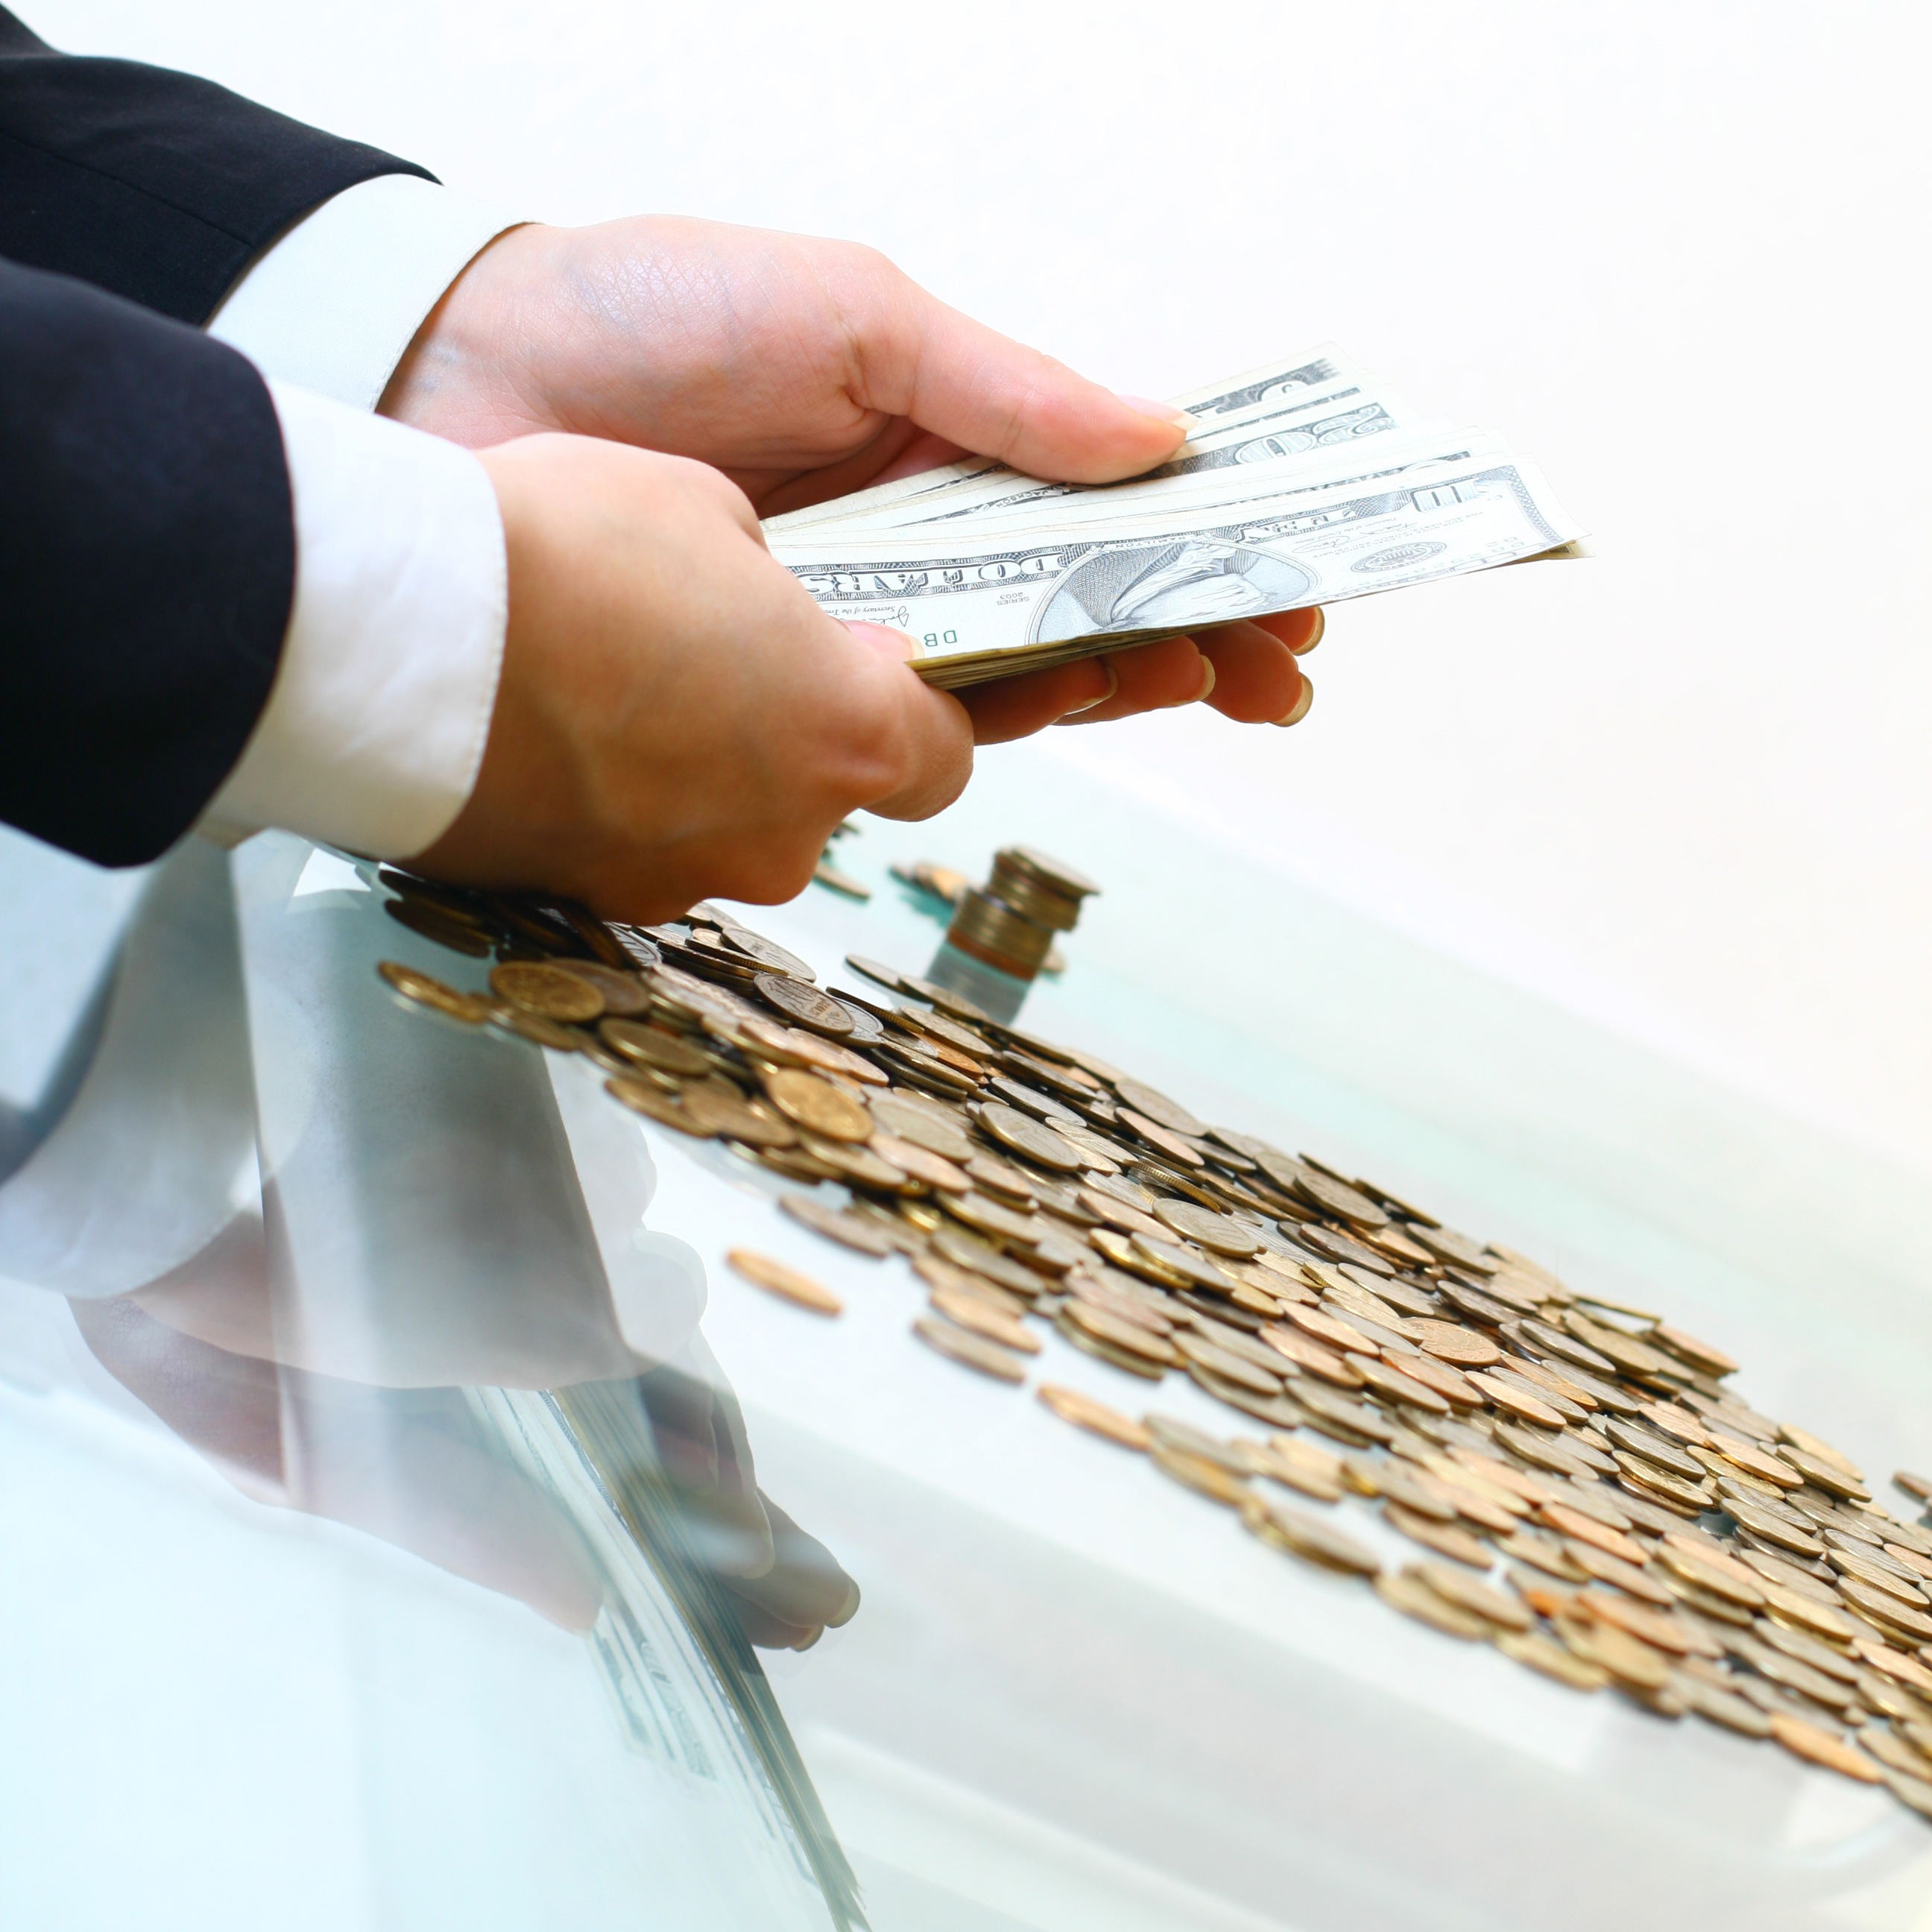 1 Offer A For Immediate Payment 2 10 Tells Your Customer That If They Pay Within Days You Will Give Them Percent